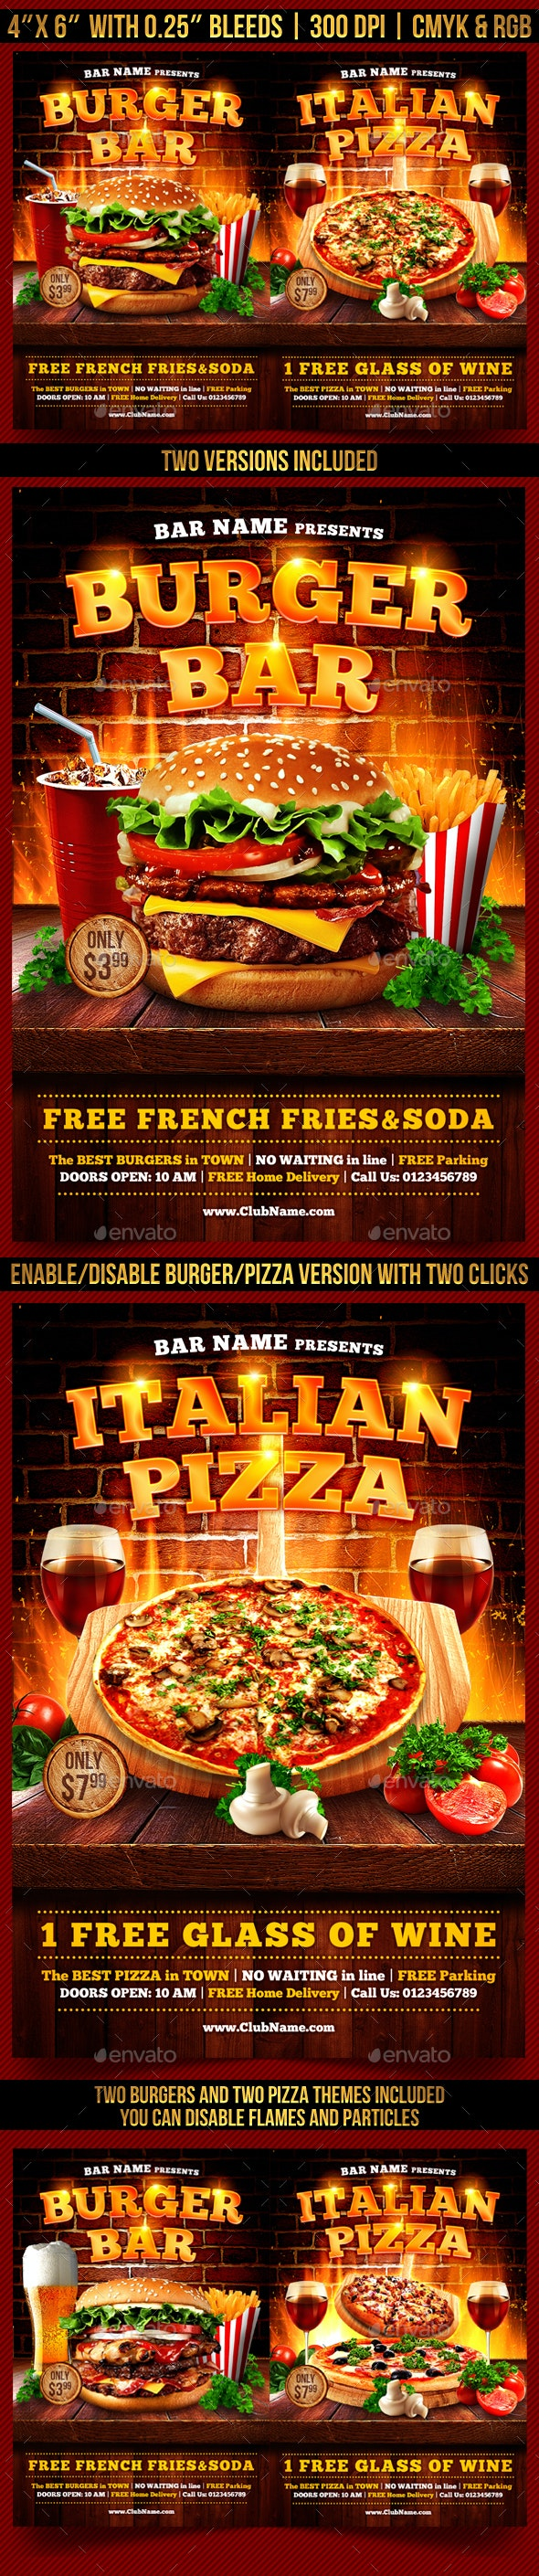 Burger and Pizza Flyer Template - Restaurant Flyers